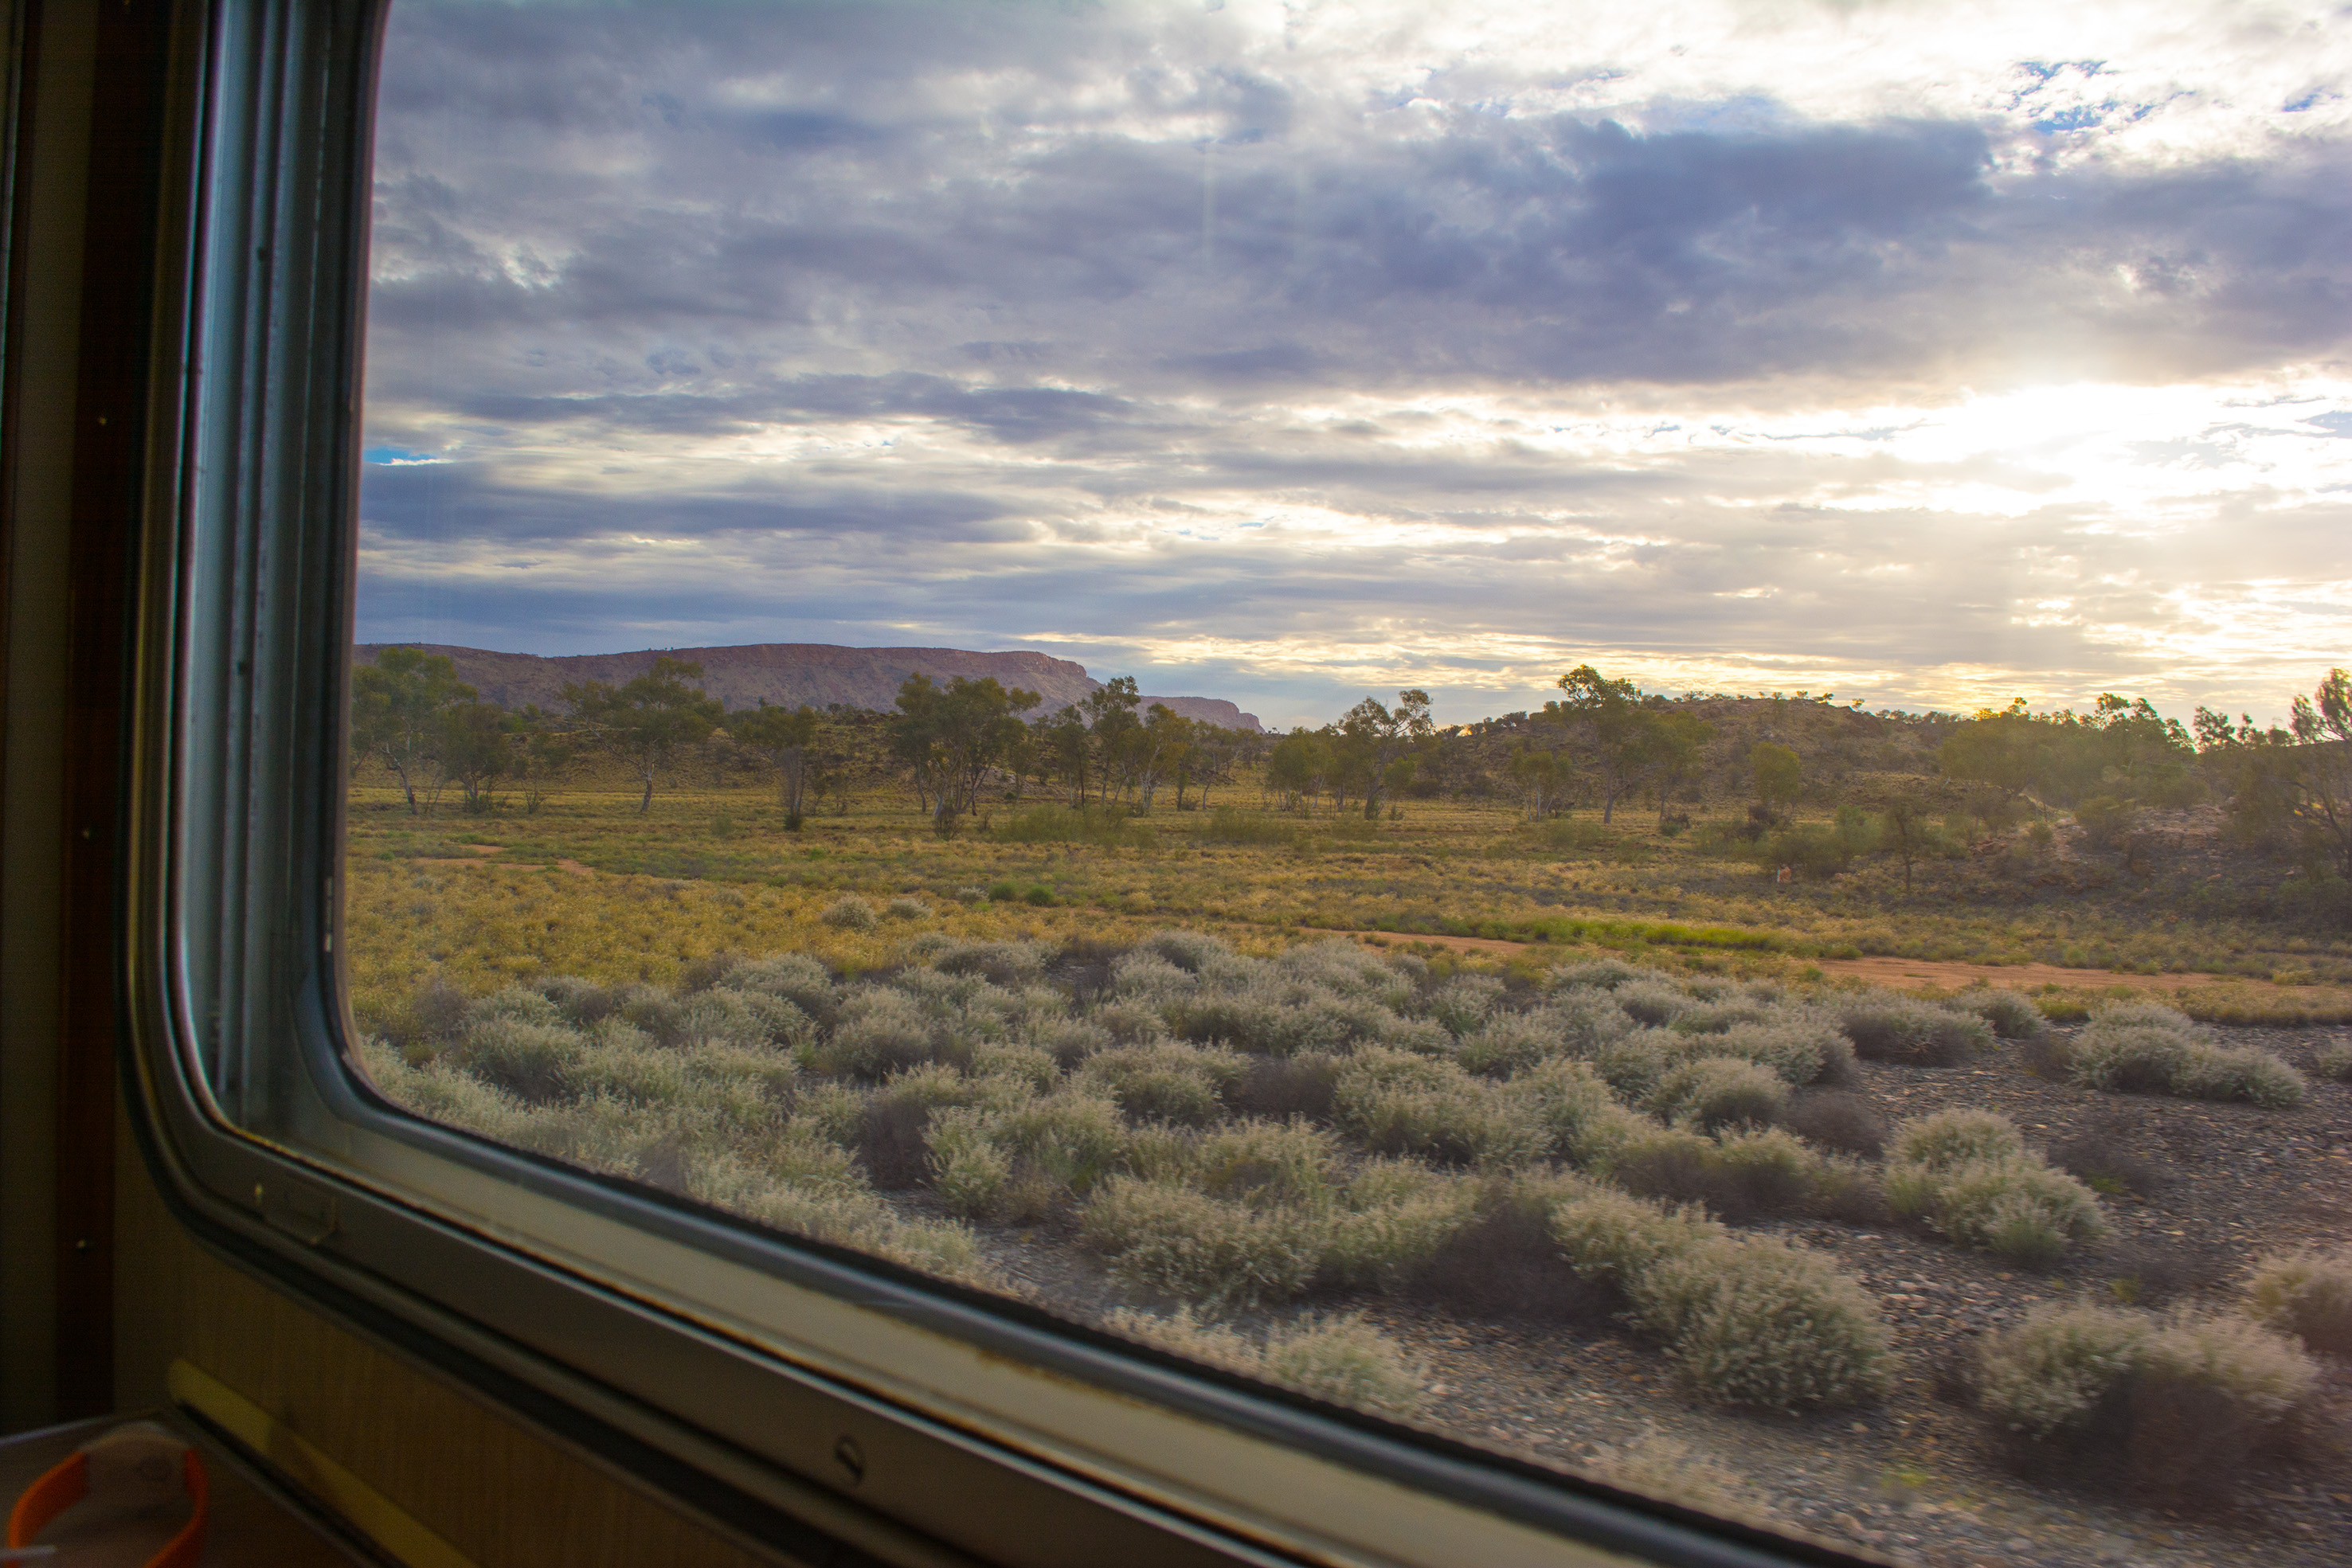 20. Views from The Ghan